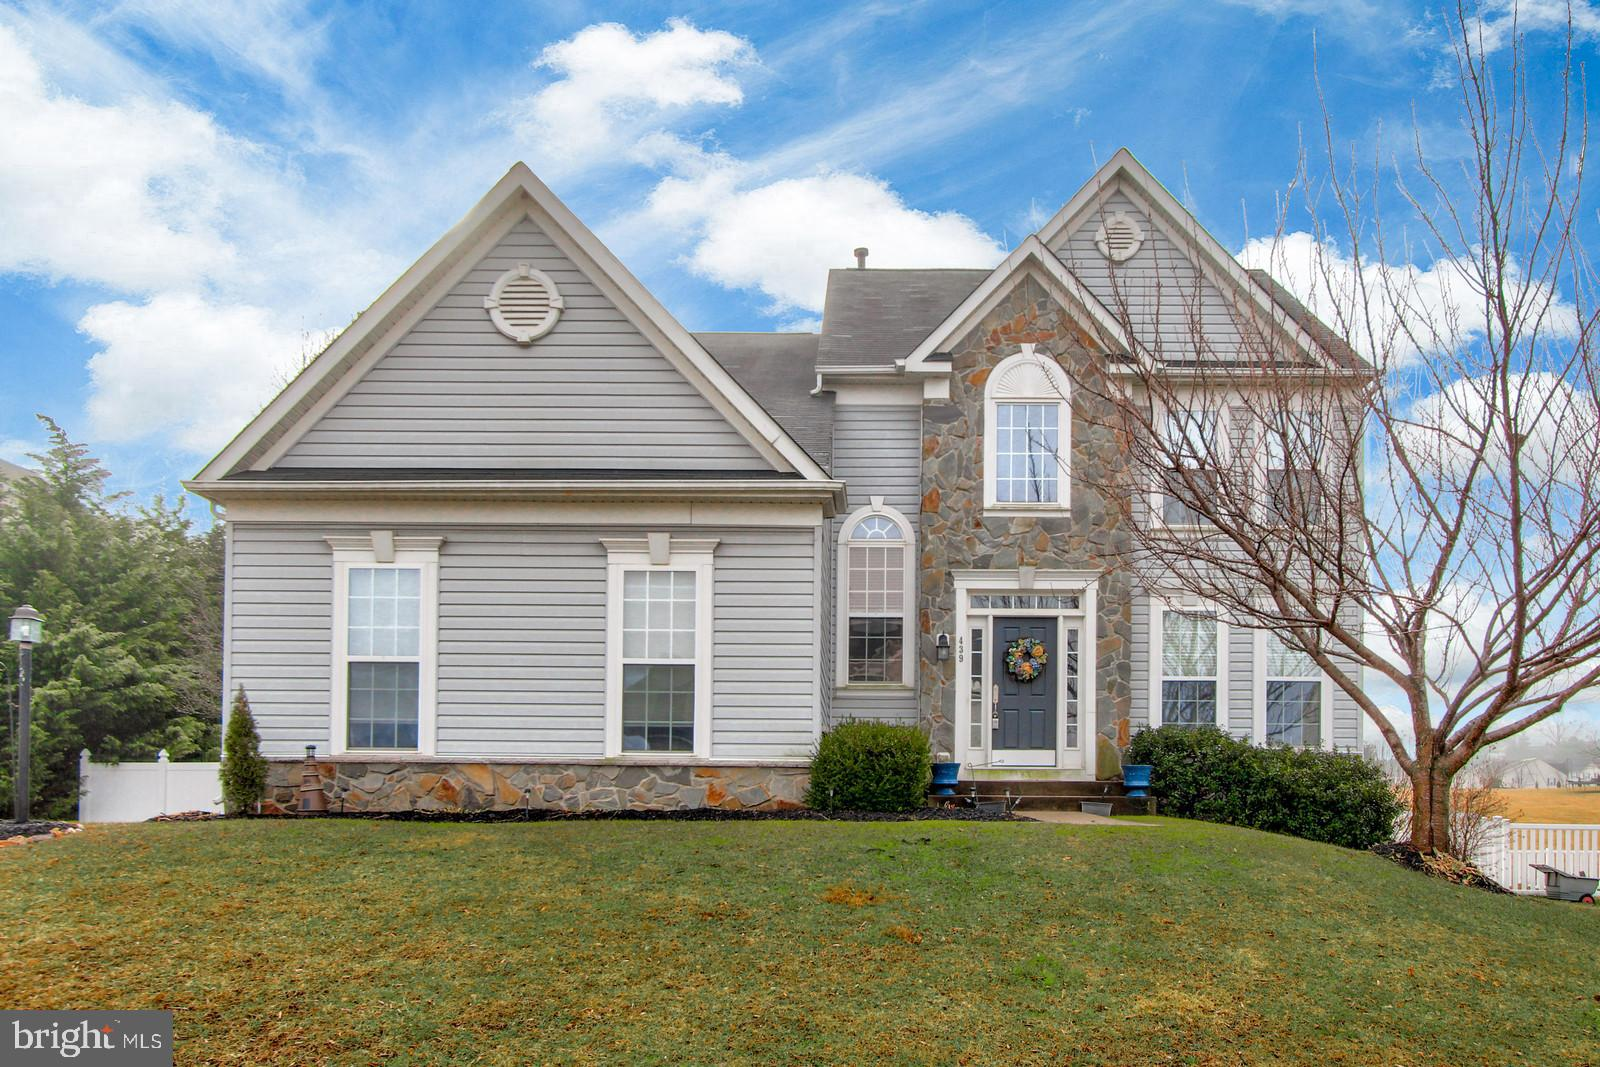 439 COUNTRYSIDE ROAD, SEVEN VALLEYS, PA 17360